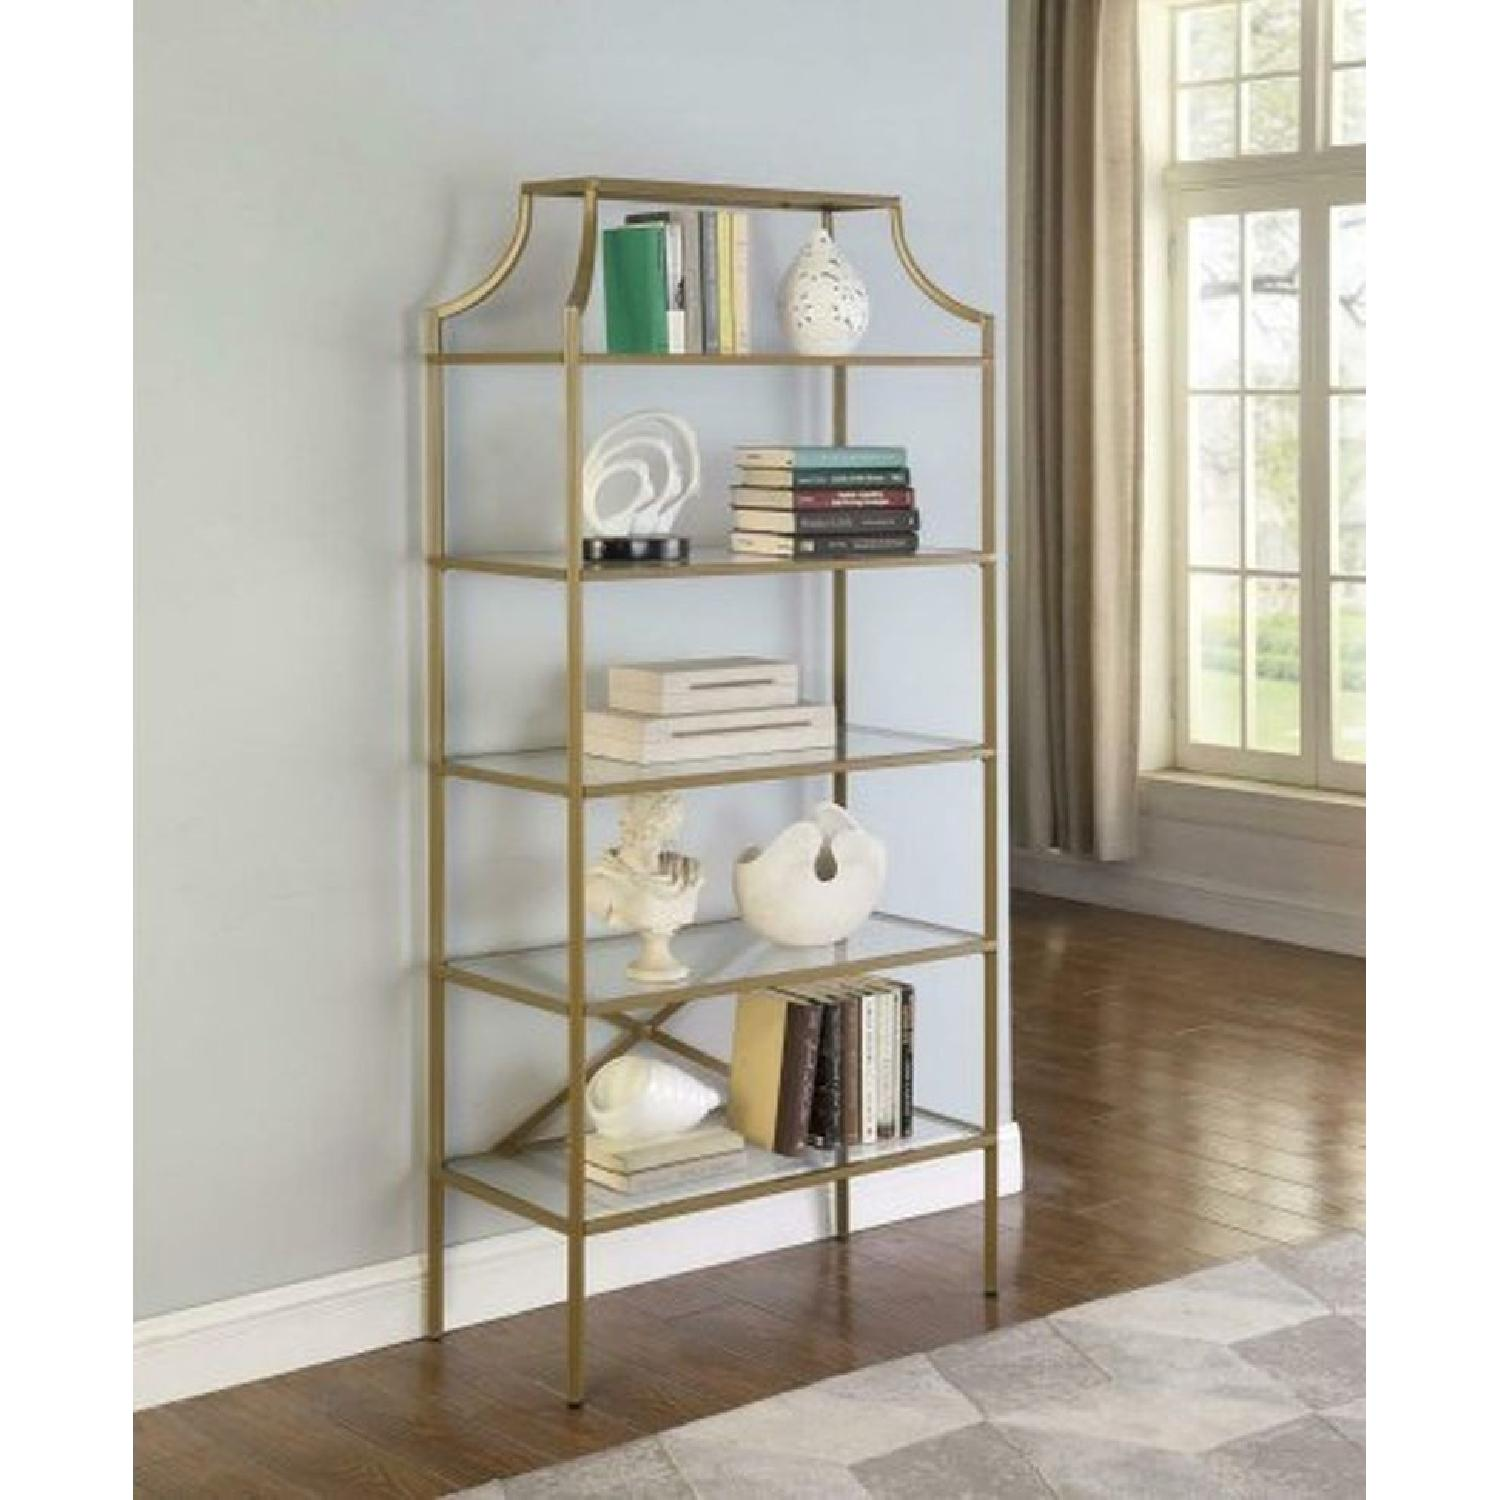 Modern Display Unit w/ Gold Frame & Tempered Glass Shelves - image-3